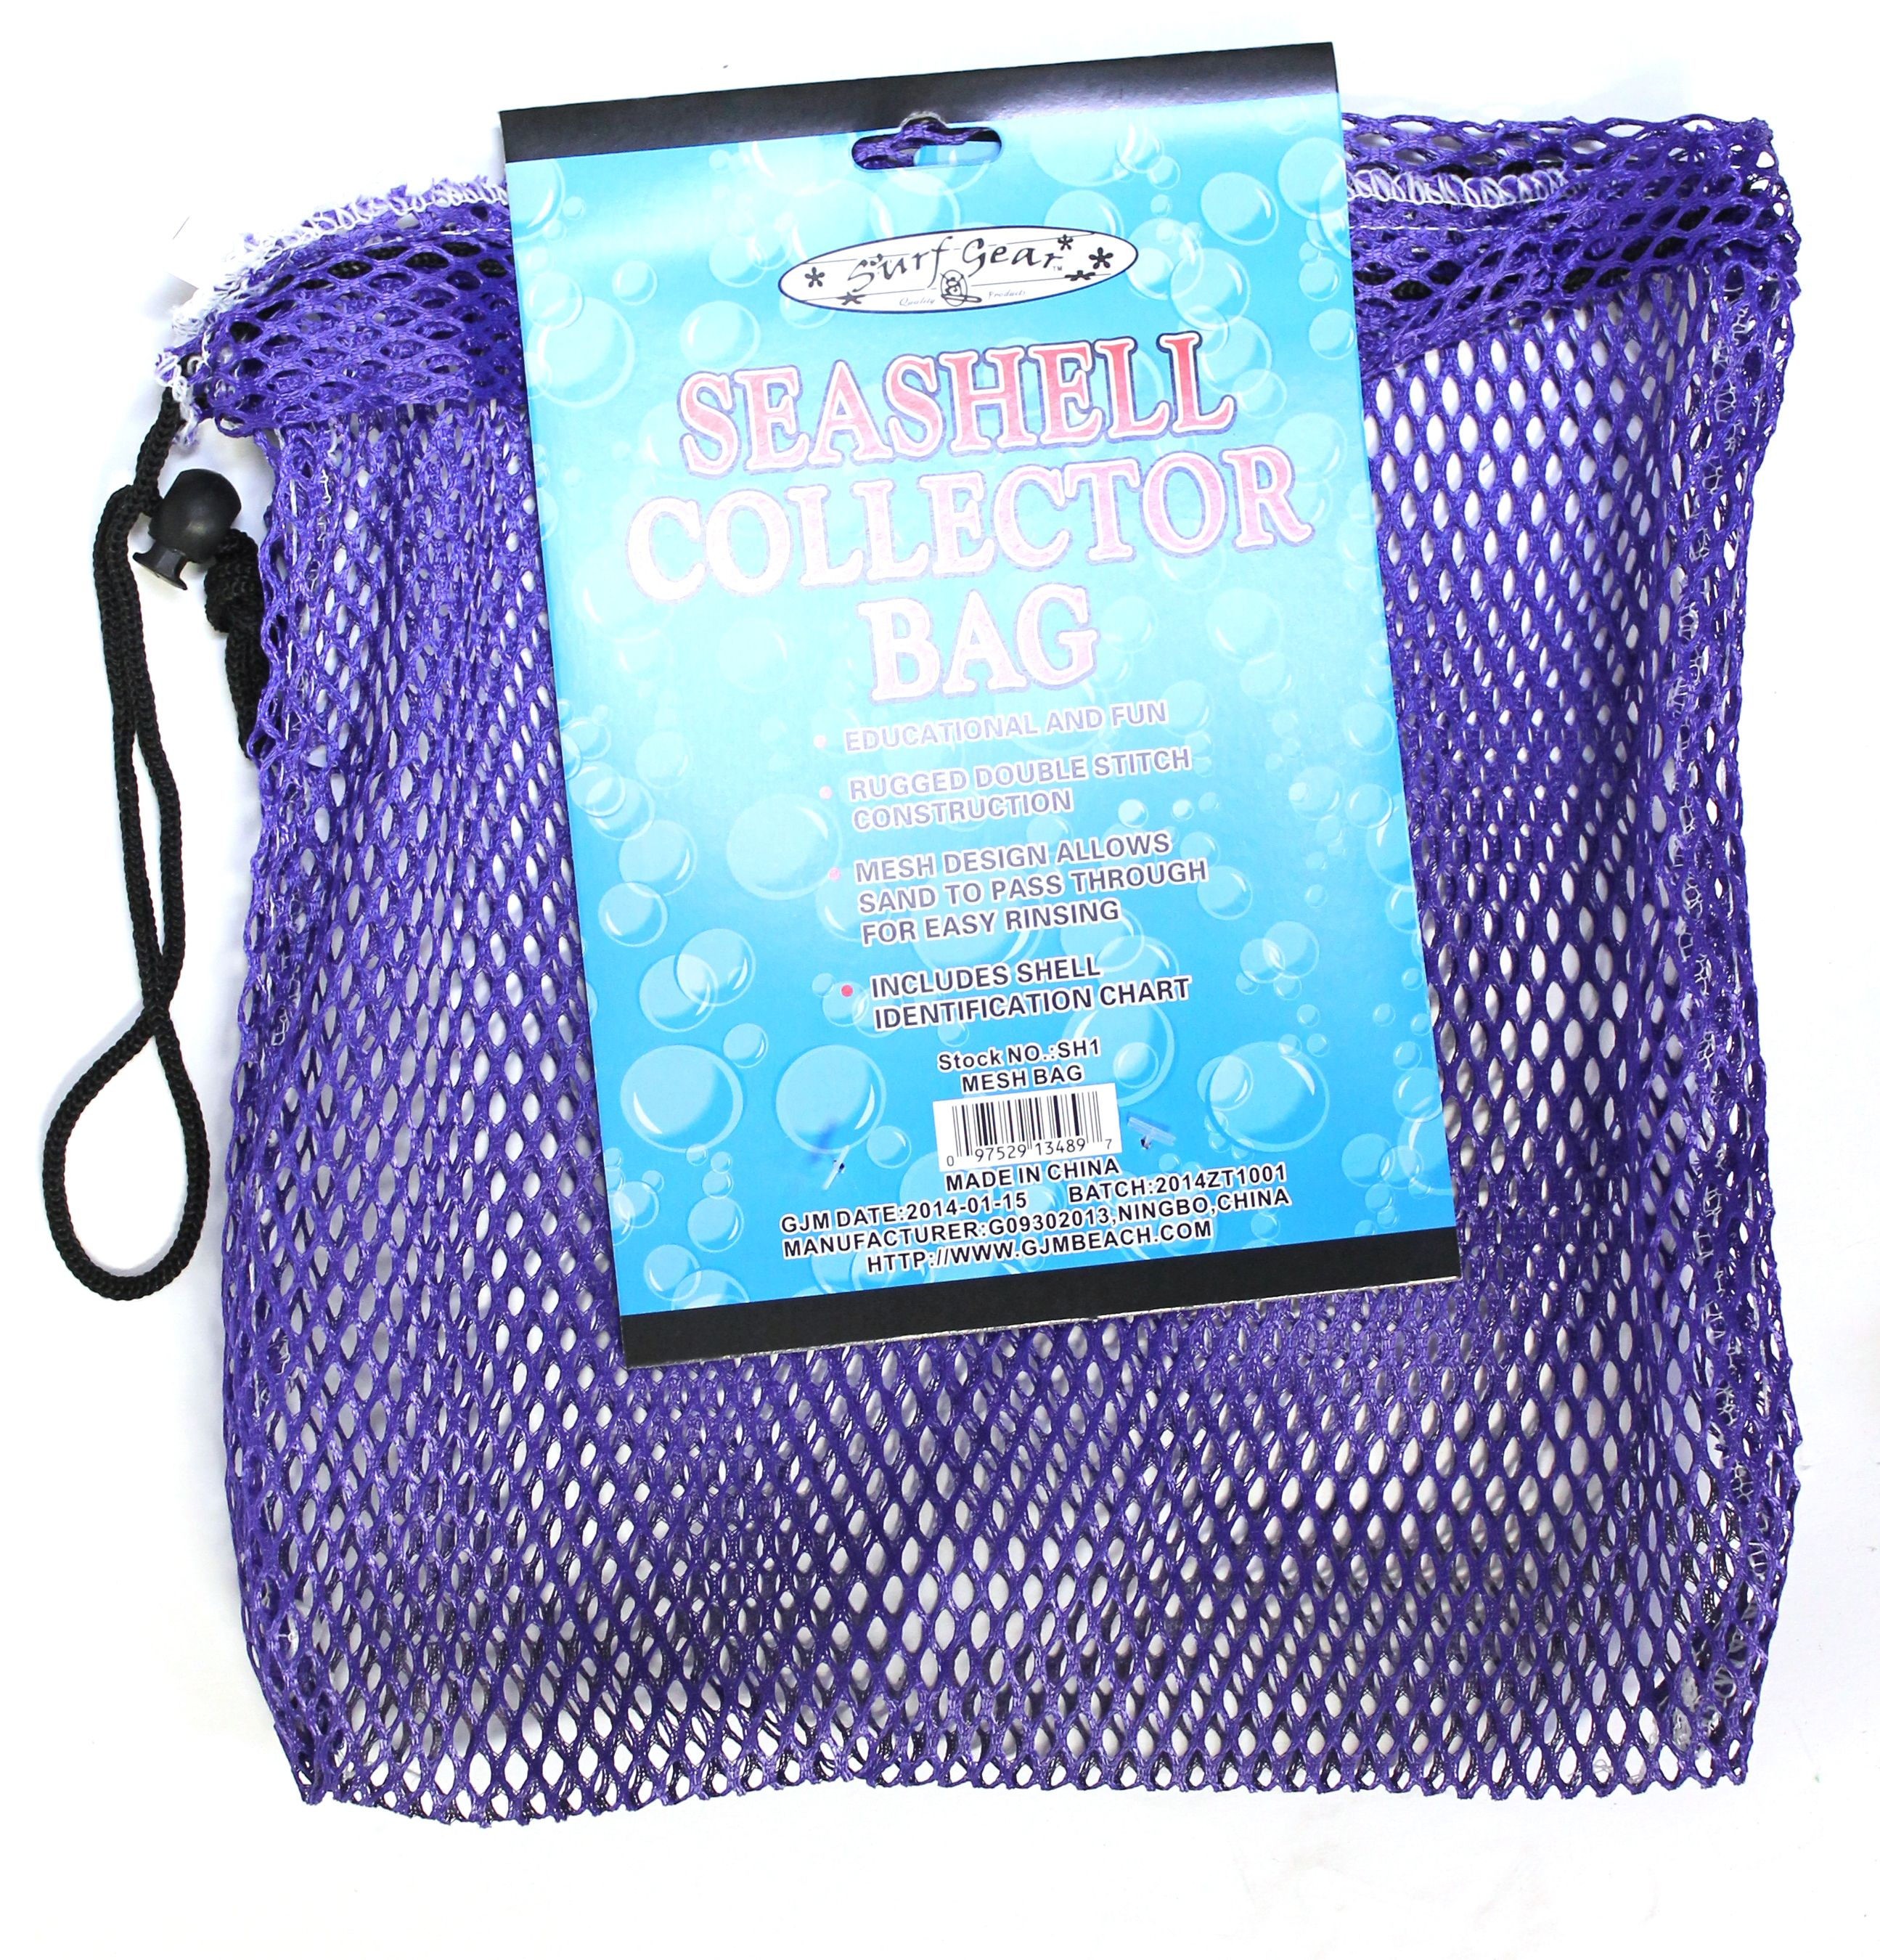 Mesh Seashell Collection Bag (12 inches x 12 inches) with Shell Identification Guide